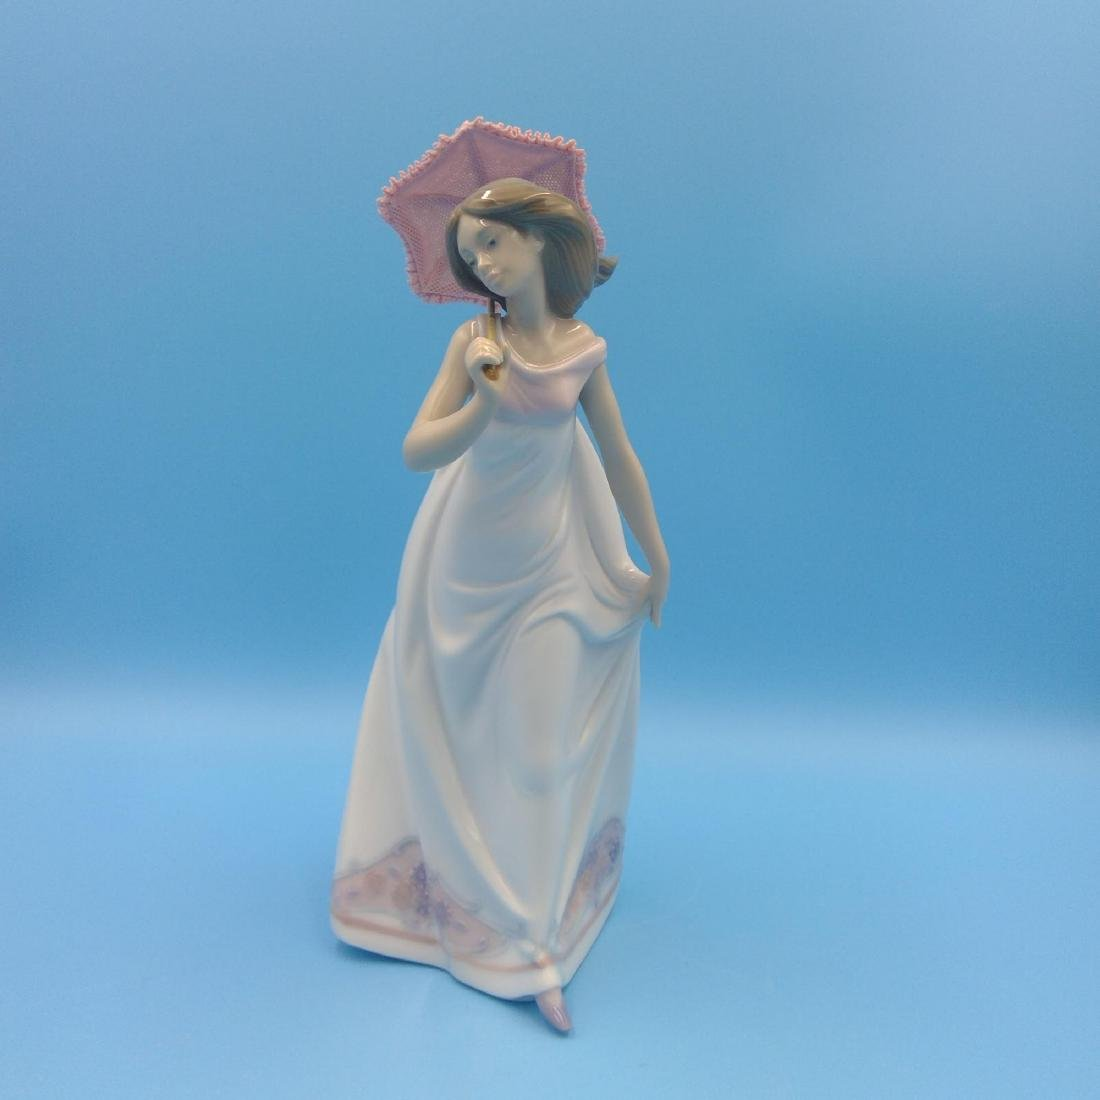 LLADRO PORCELAIN FIGURINE GIRL WITH UMBRELLA